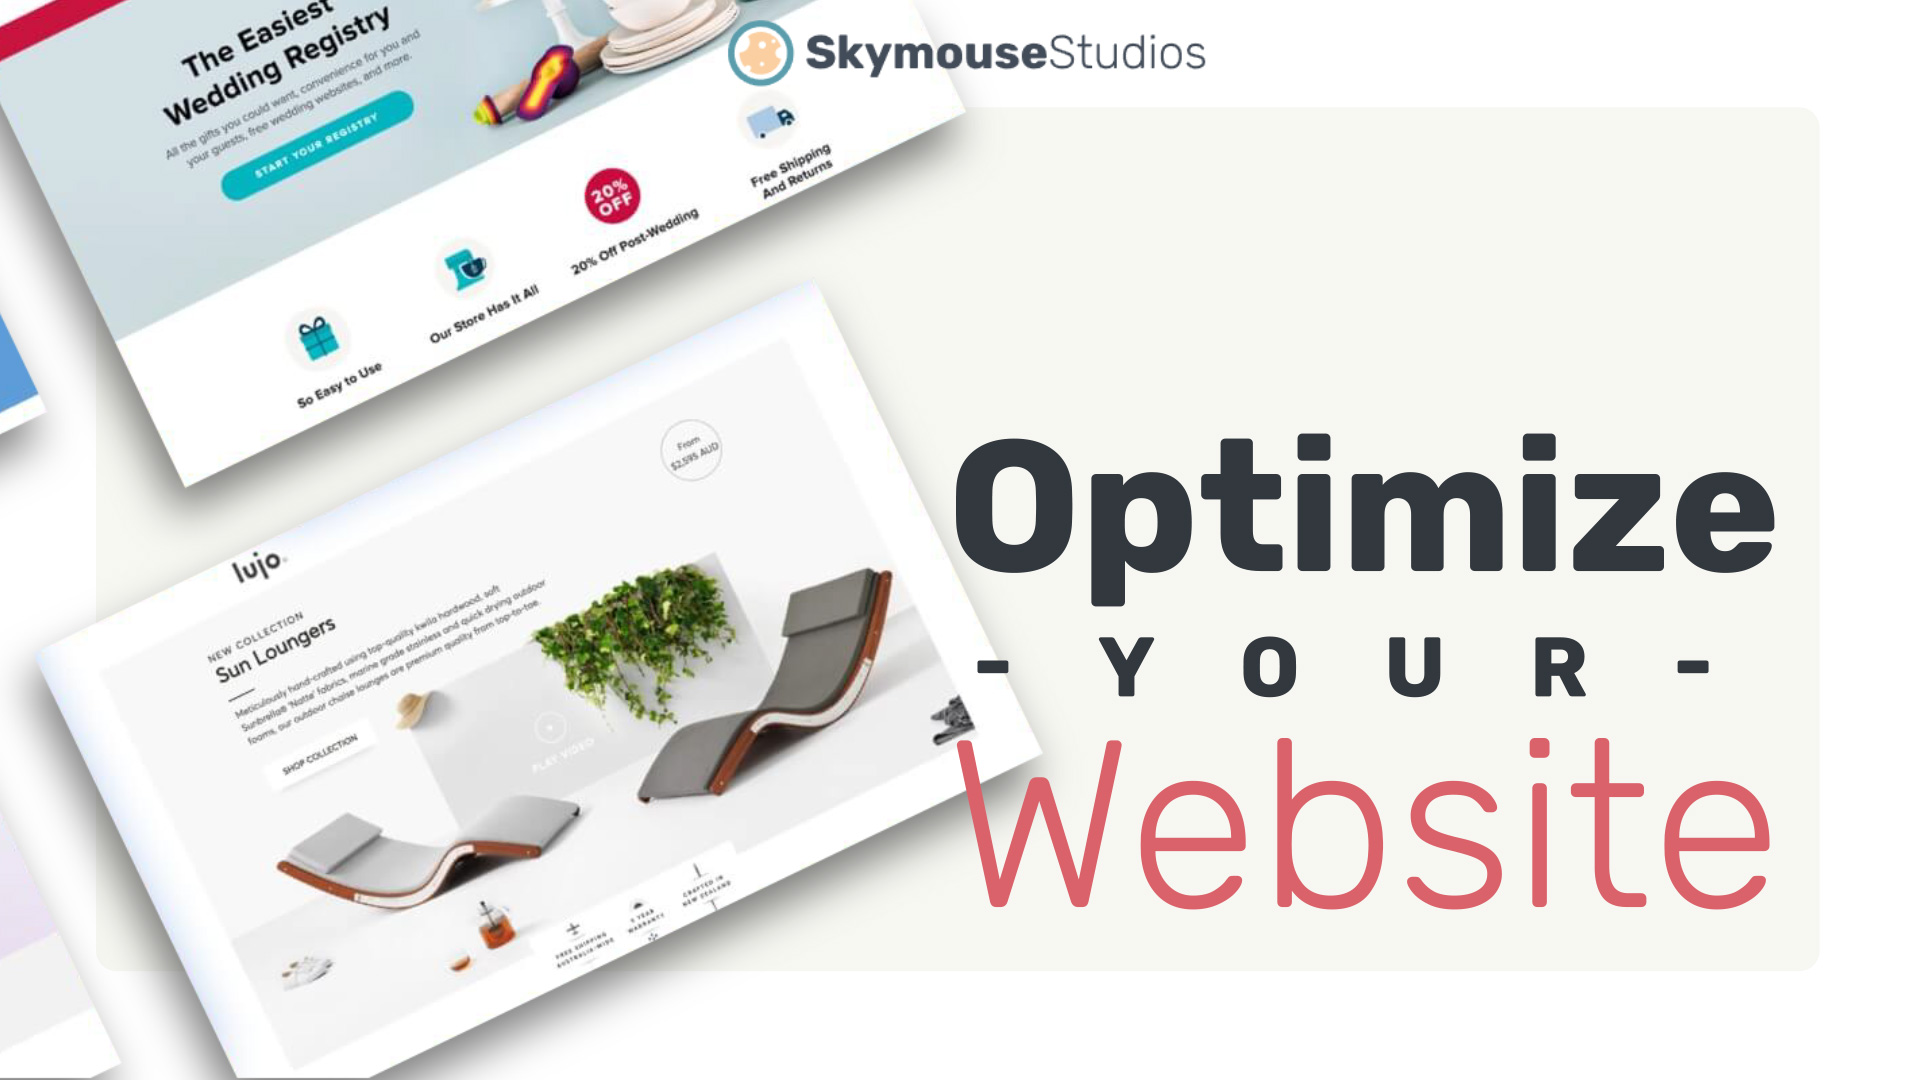 3 Steps to optimize your website to sell more